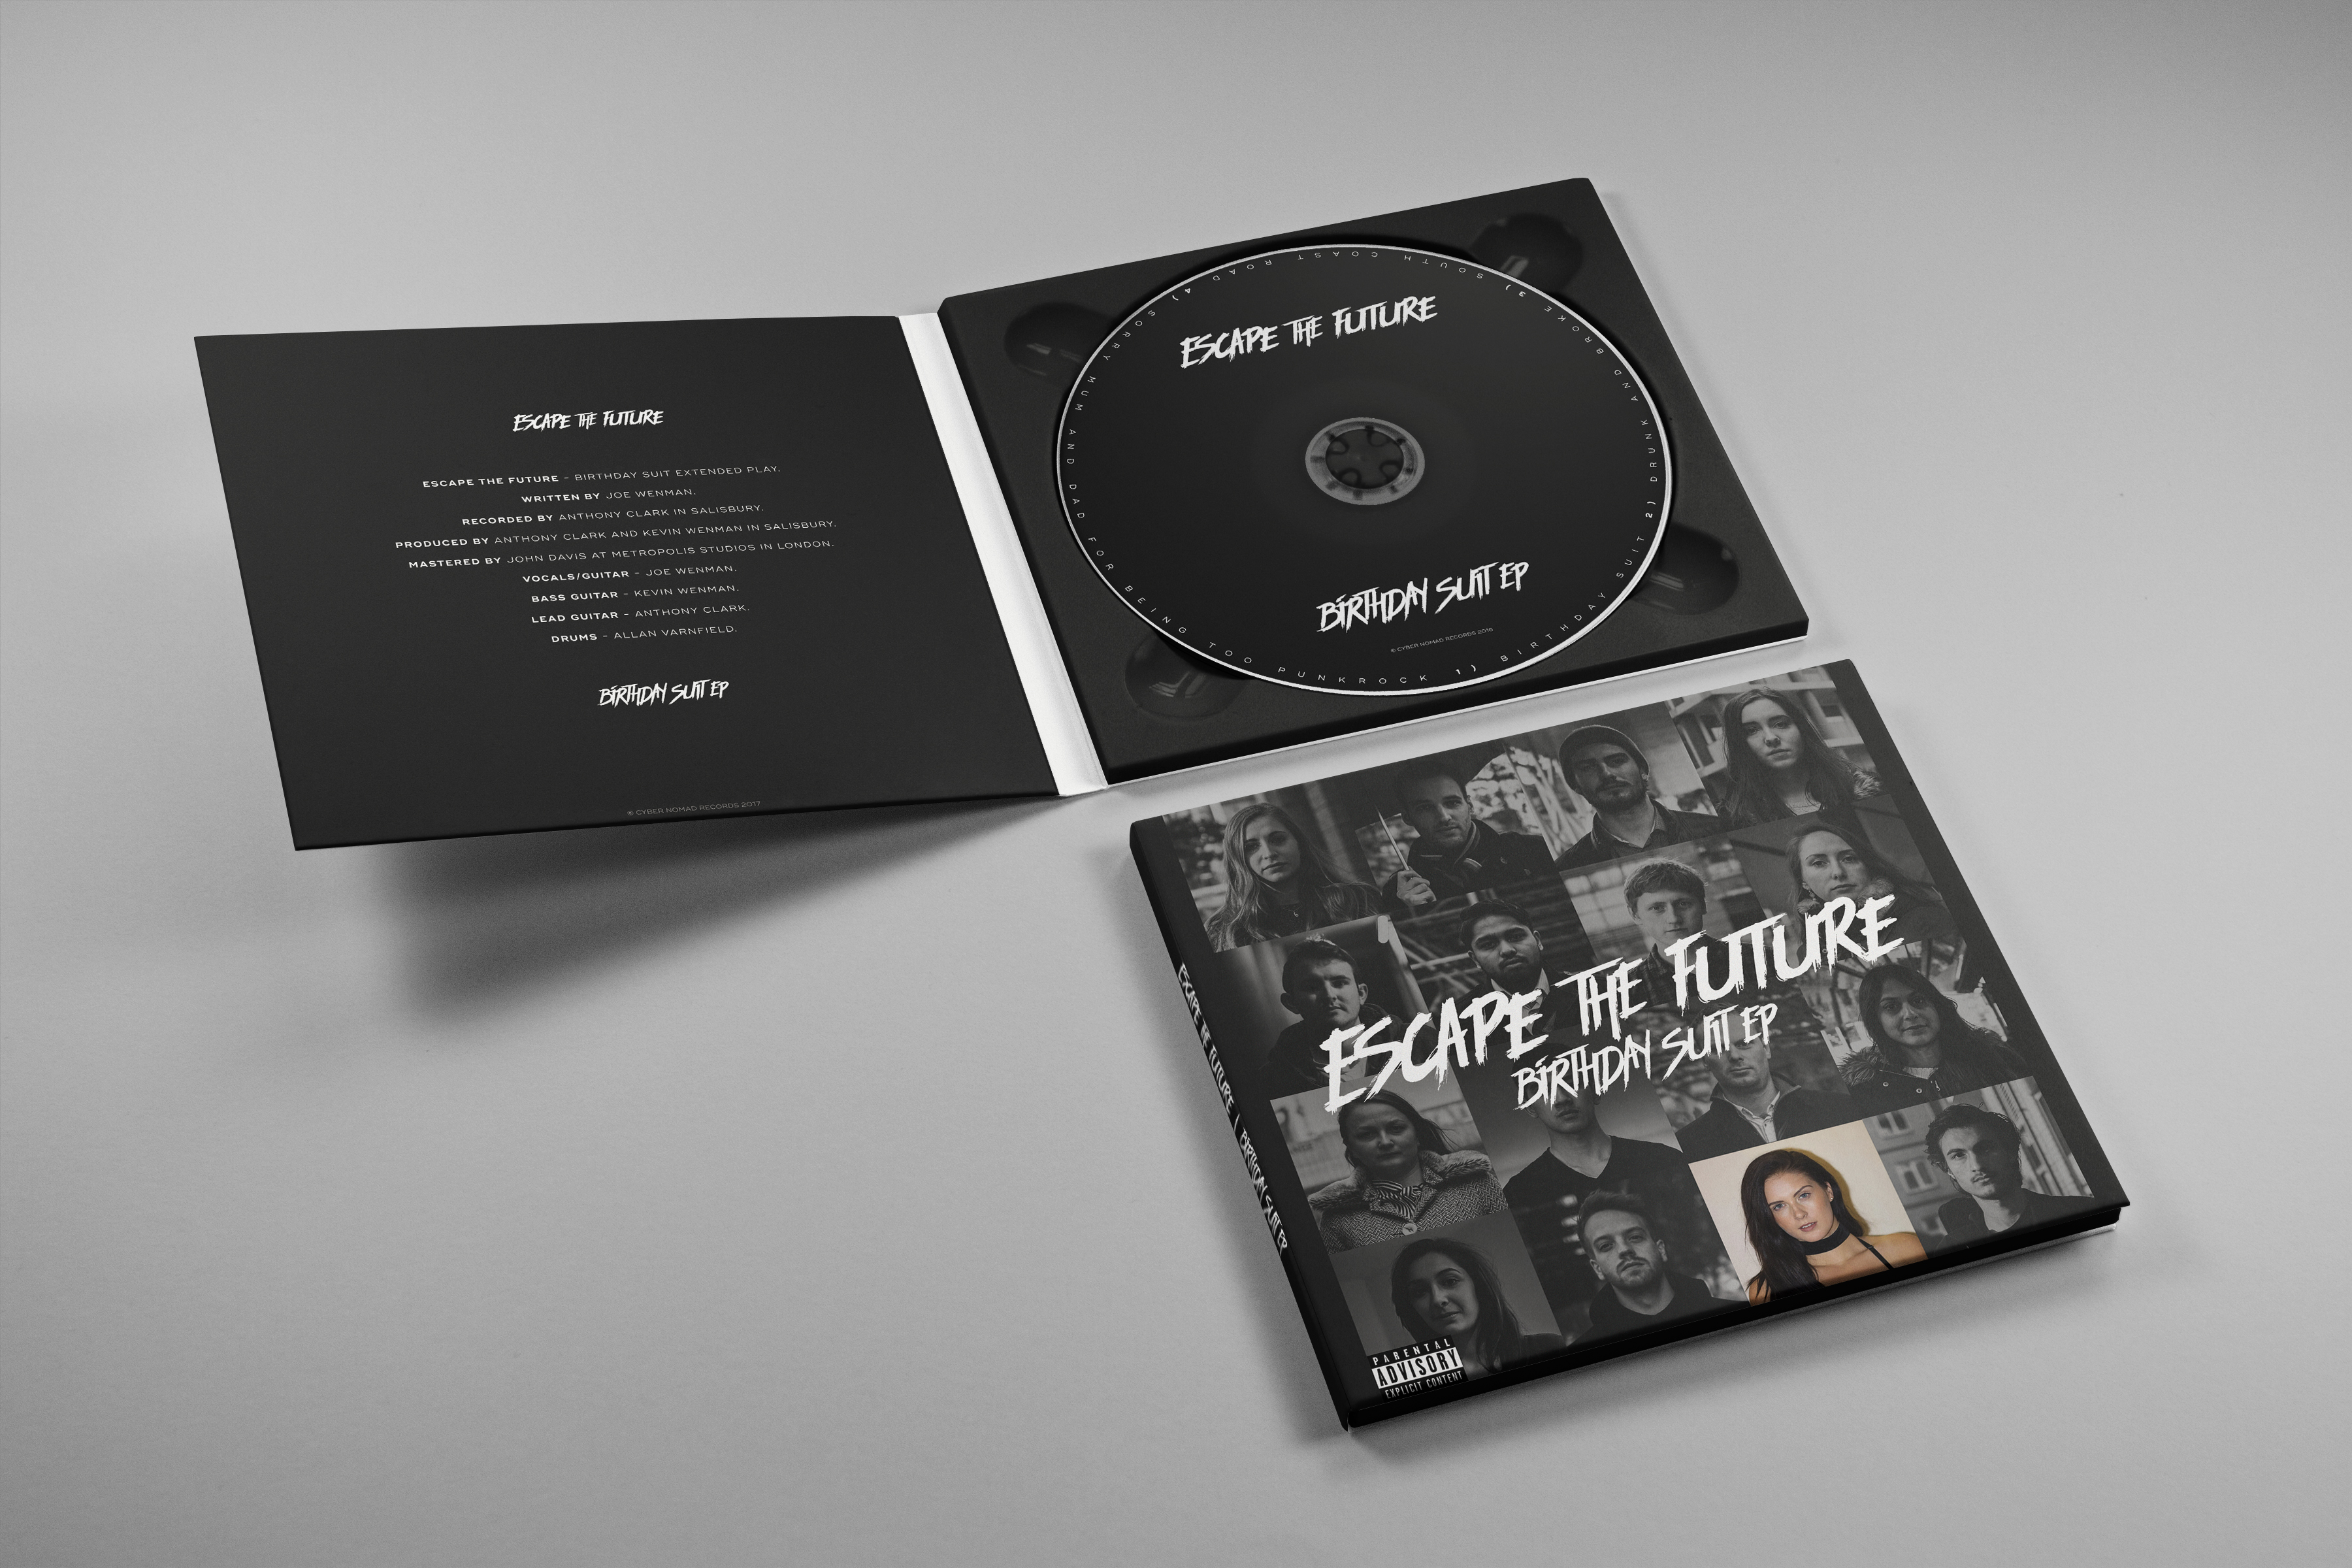 Birthday Suit EP - CD Copy - Escape the Future